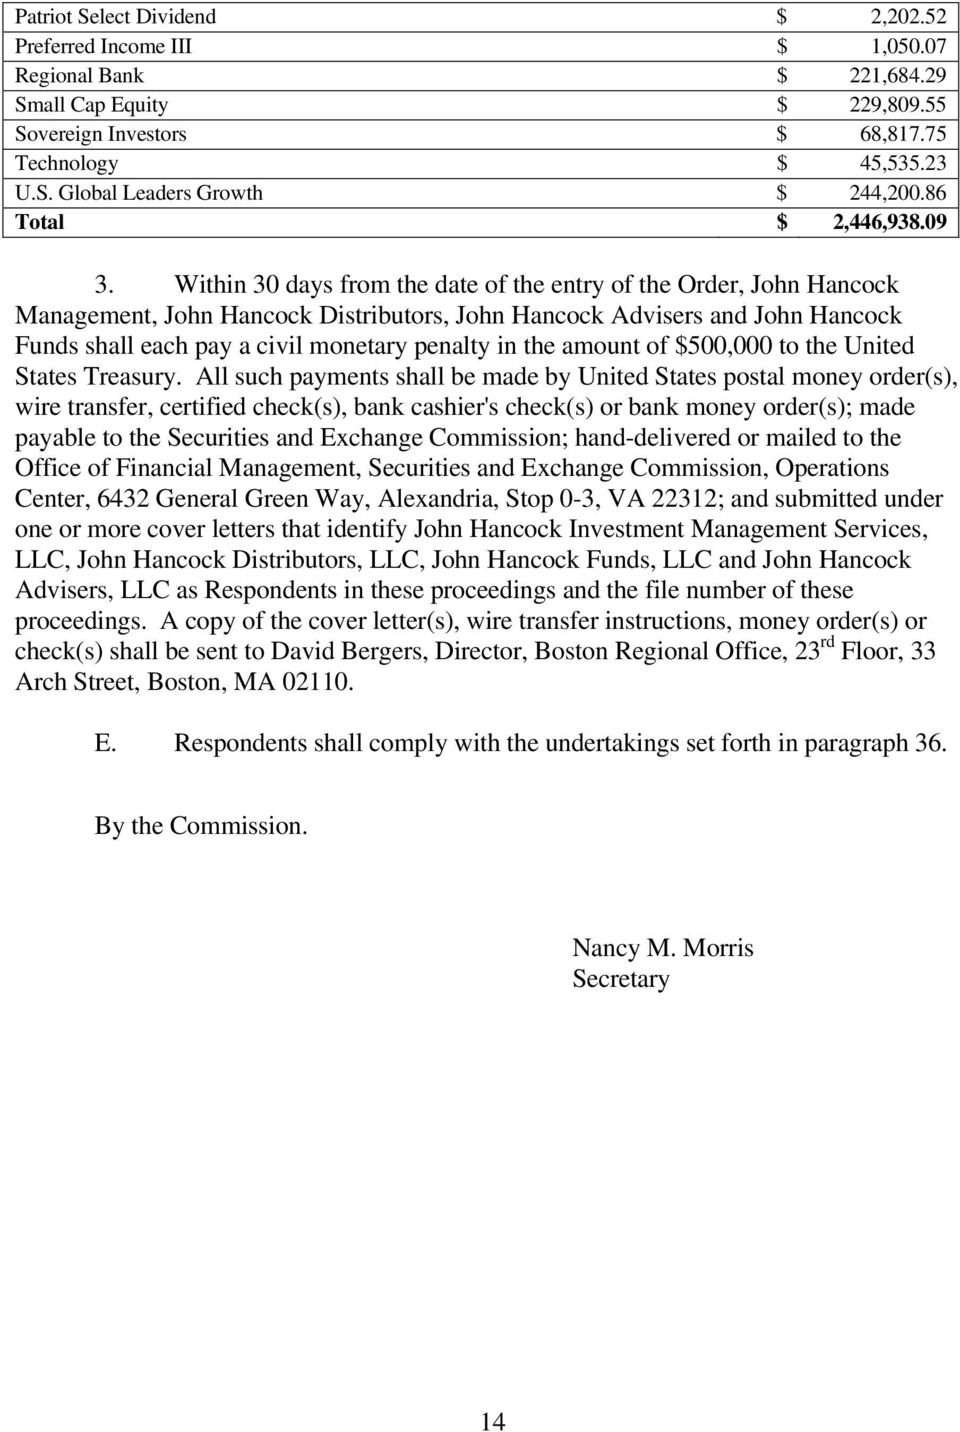 Within 30 days from the date of the entry of the Order, John Hancock Management, John Hancock Distributors, John Hancock Advisers and John Hancock Funds shall each pay a civil monetary penalty in the